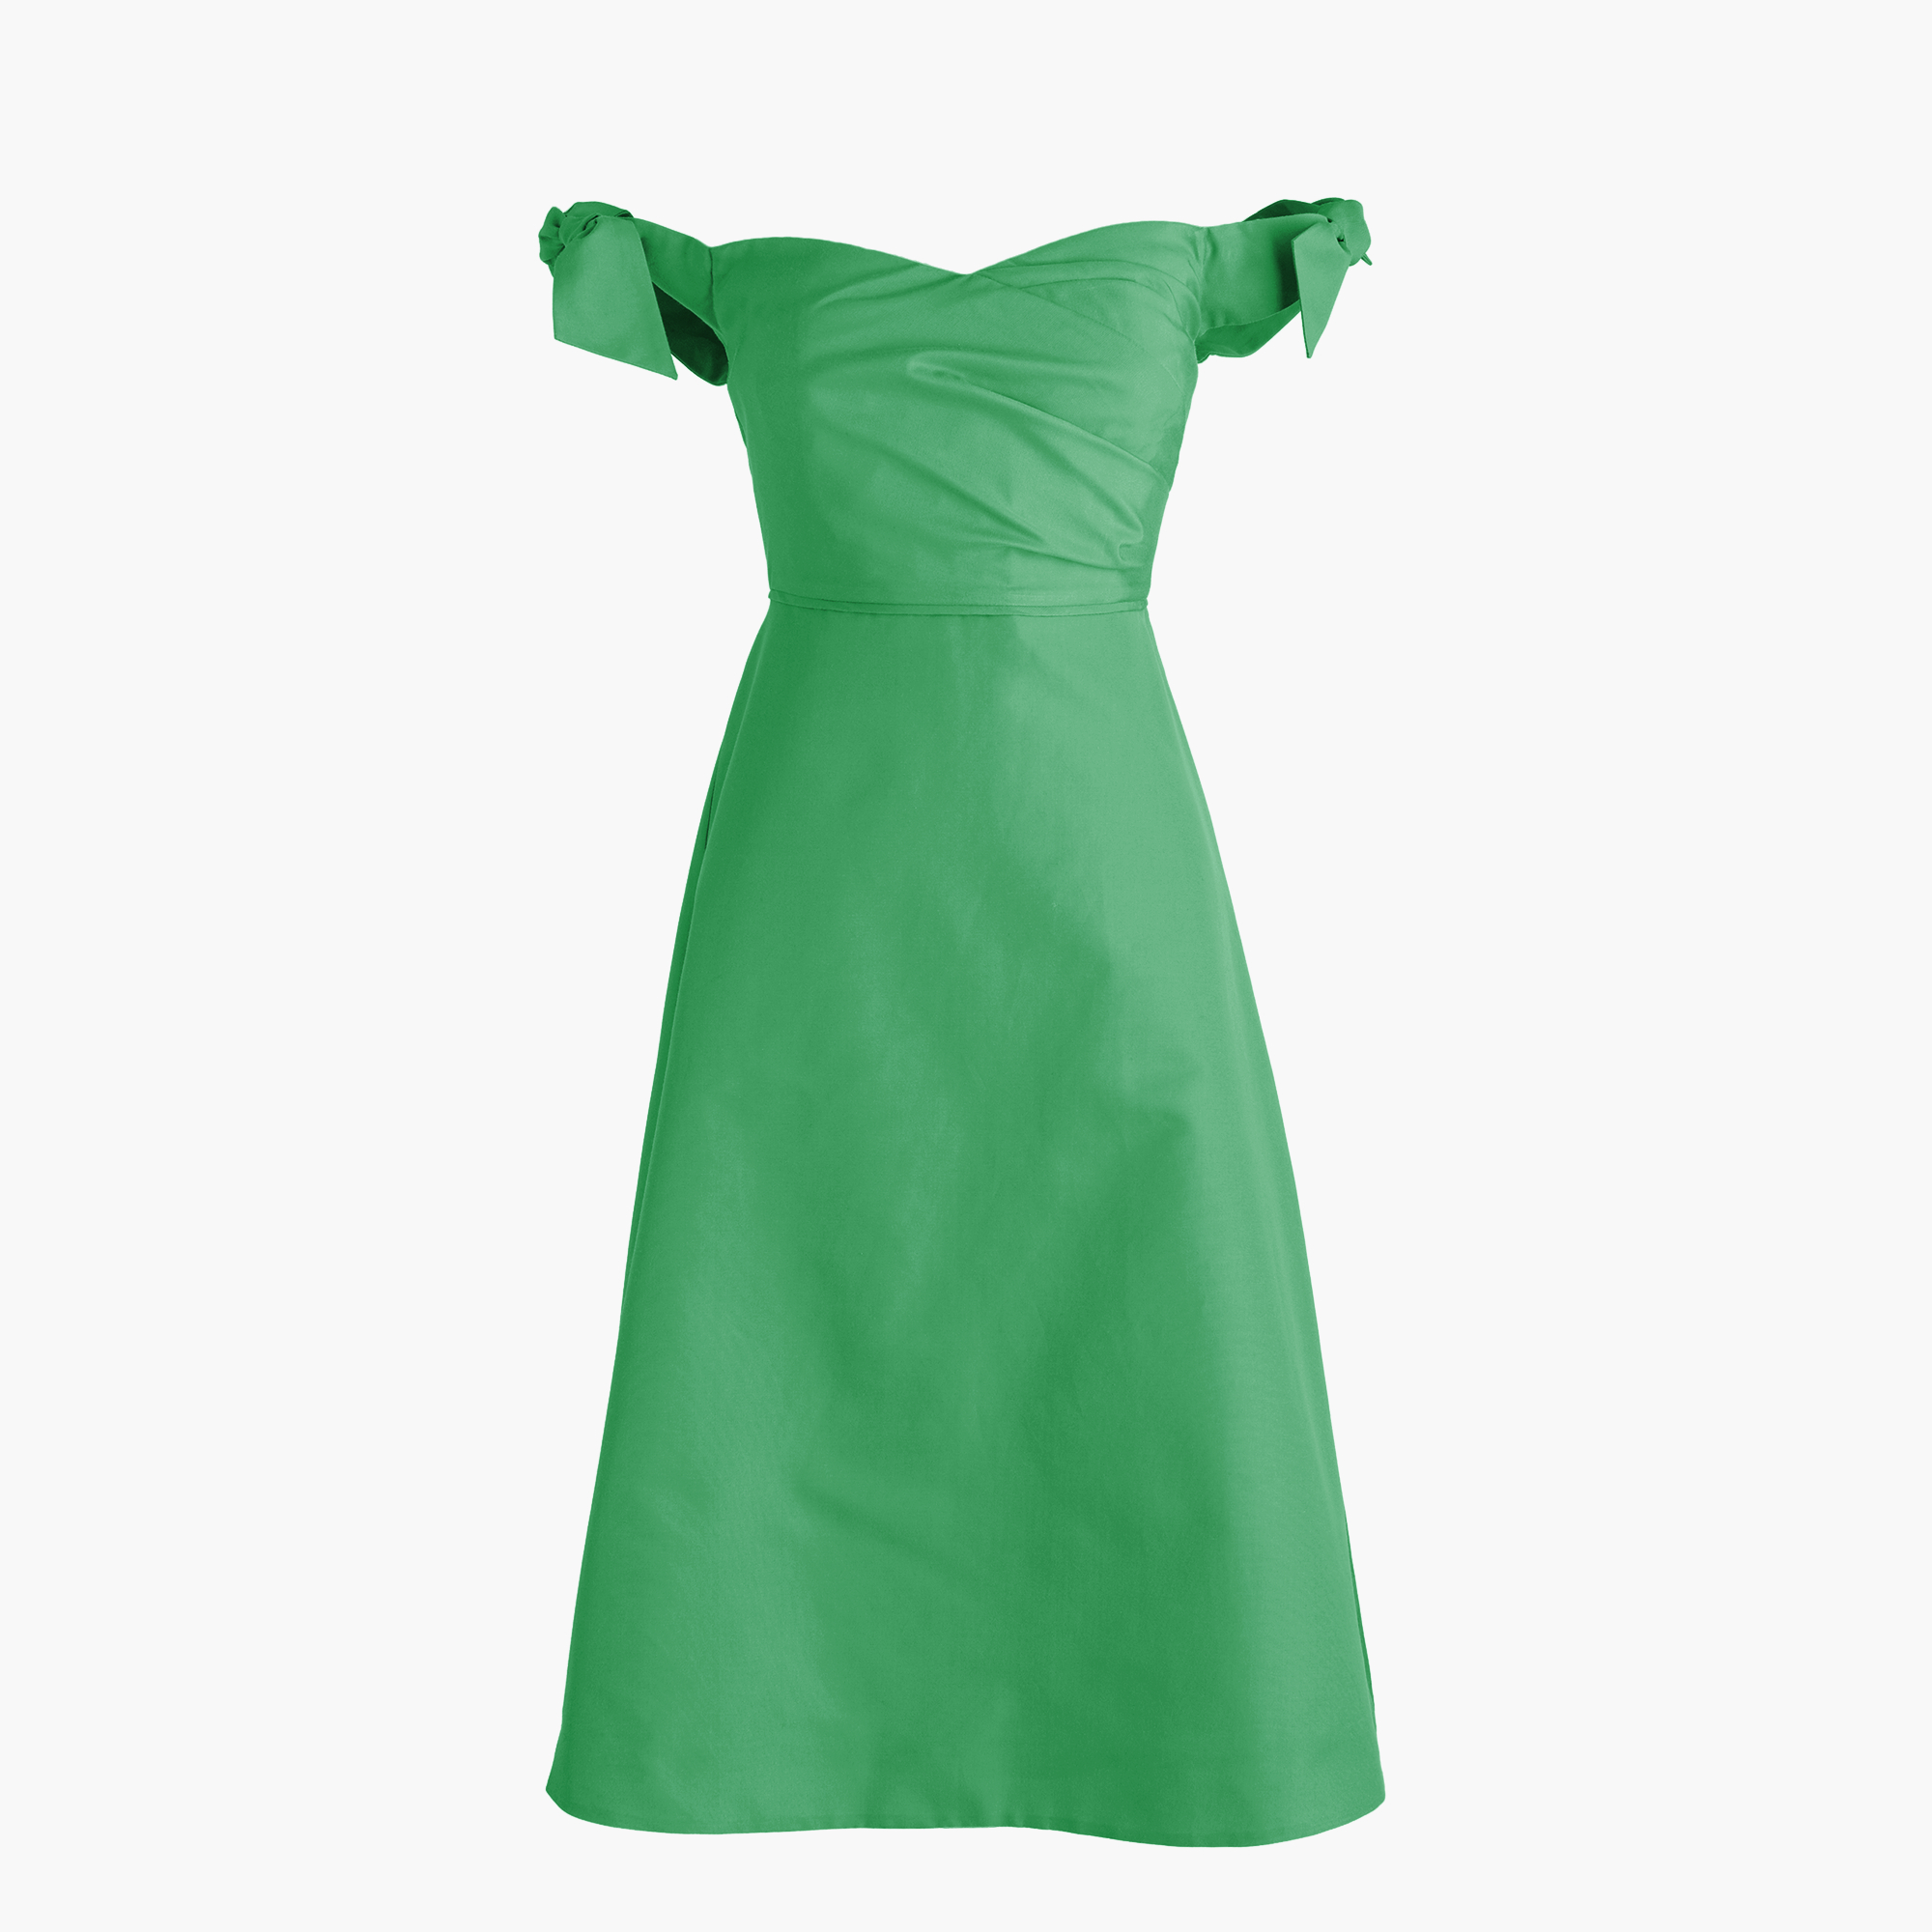 J.Crew\'s First Party Dress Collection Is Here - Racked